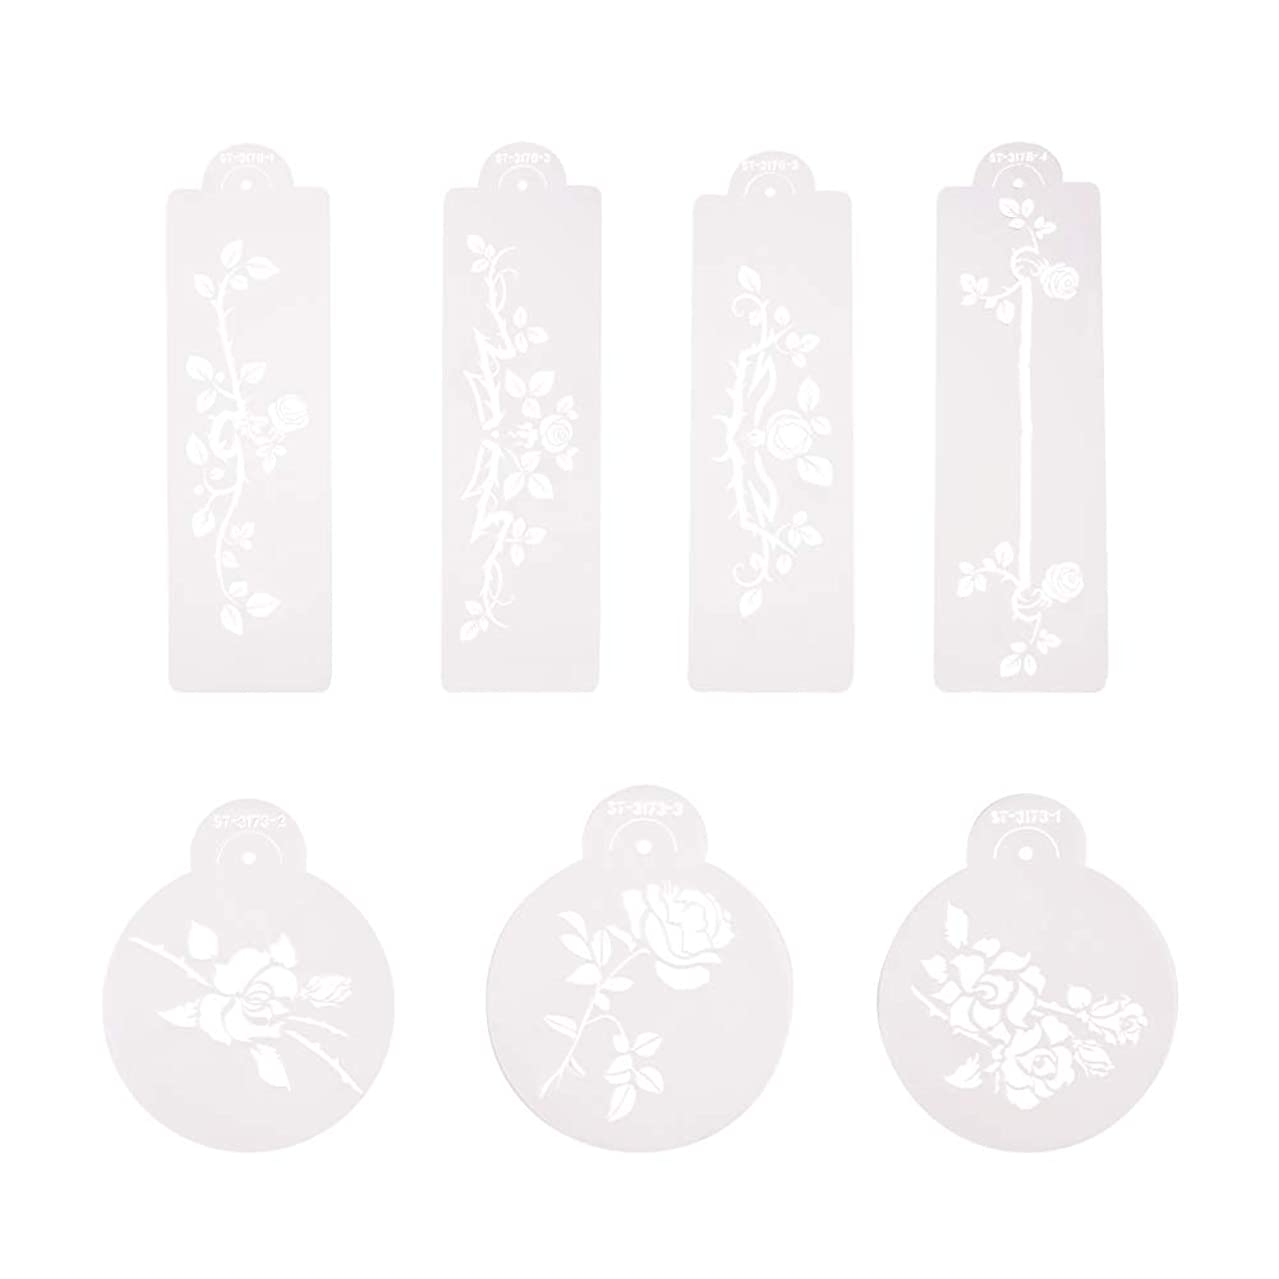 PH PandaHall 7pcs Plastic Flower Drawing Painting Stencil Hollow Hand Accounts Ruler Template for DIY Scrapbooking, Planner, Bullet Journals, Card Making